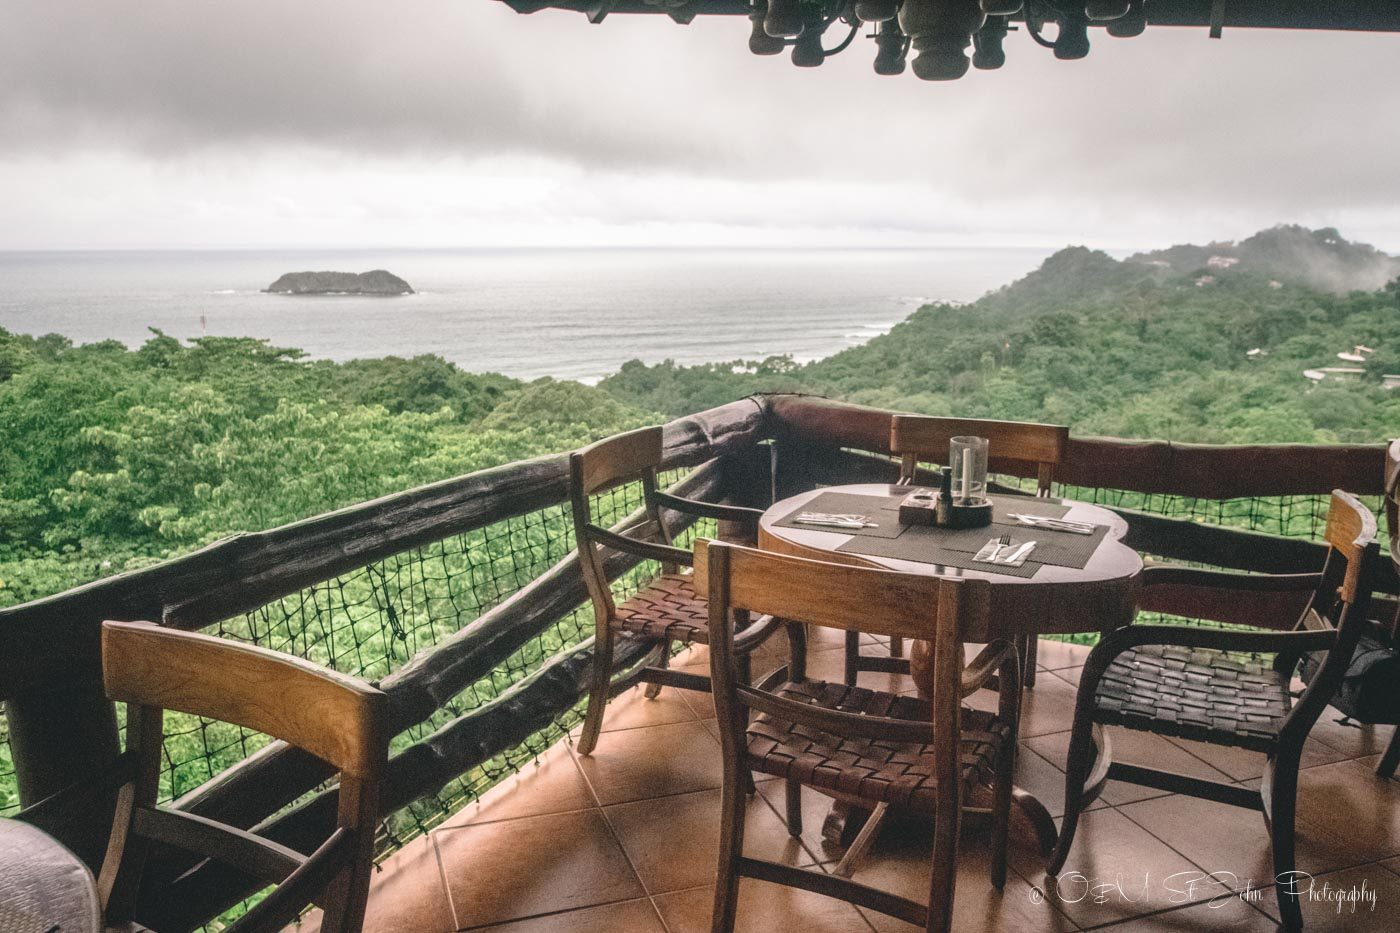 Hotel Costa Verde, Costa Rica- The World Famous Airplane Hotel